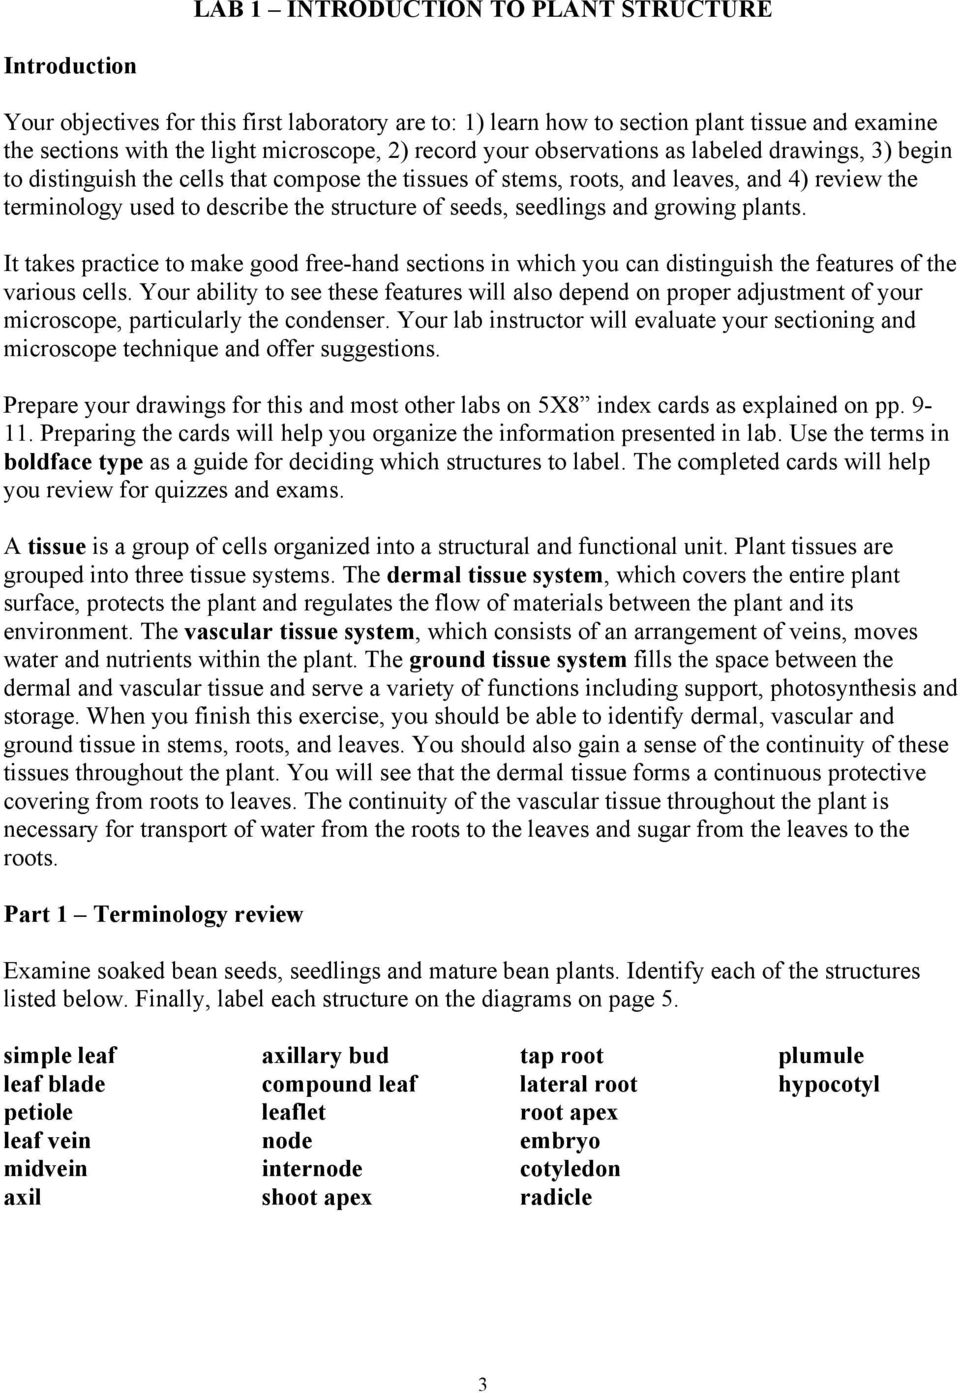 Bio 311 Plant Structure And Development Lab Manual Pdf Bean Seed Germination Diagram 9 3 1 Draw Label A Seedlings Growing Plants It Takes Practice To Make Good Free Hand Sections In